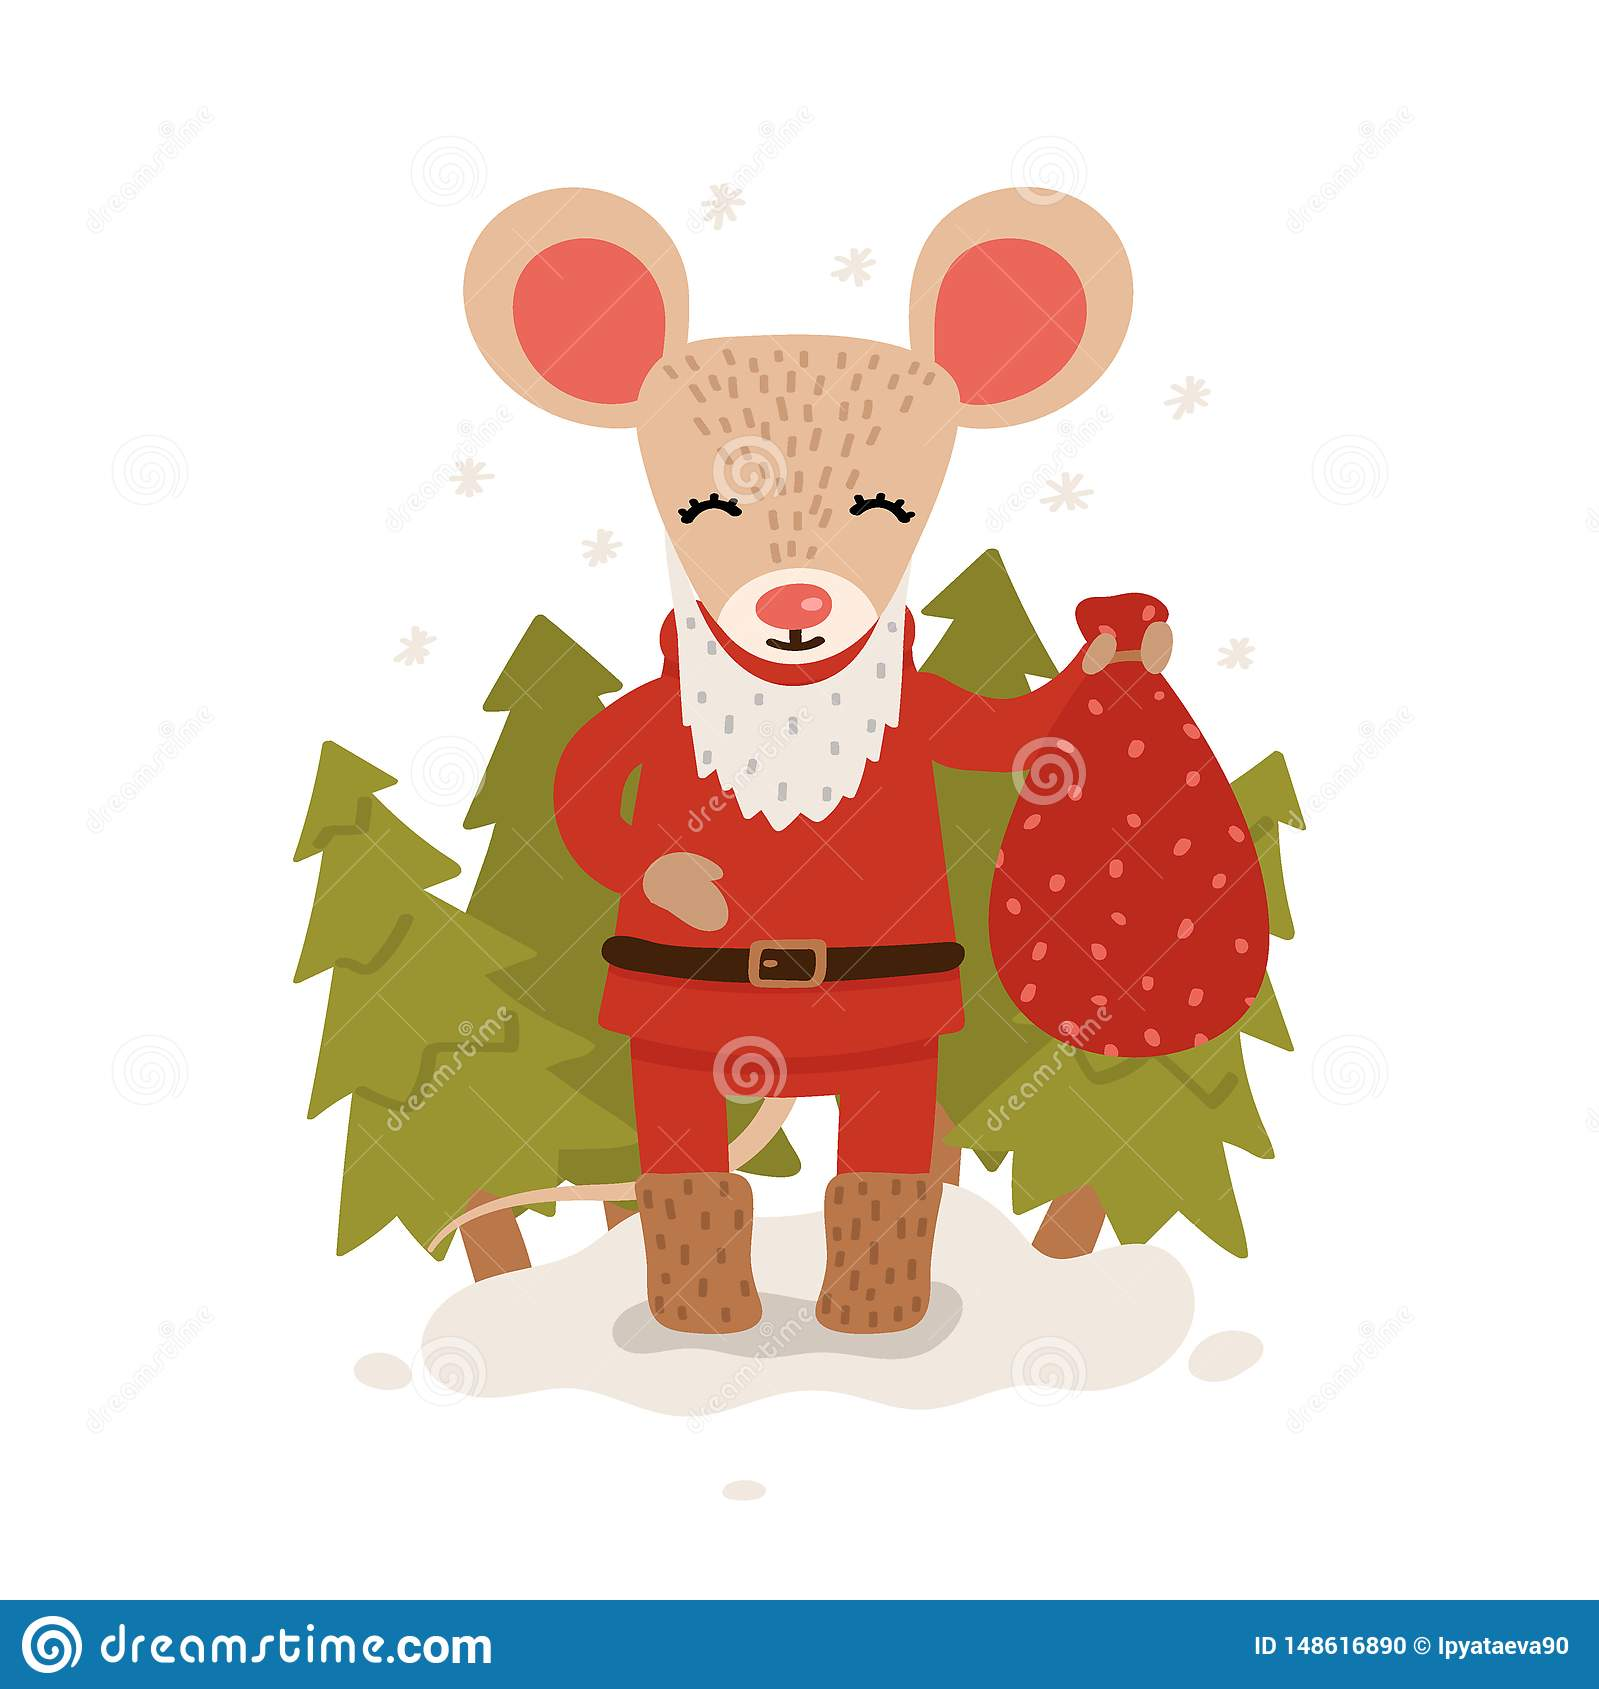 A mouse with a bag of gifts among the Christmas trees. Christmas and New Year character isolated on a white background. Postcard.